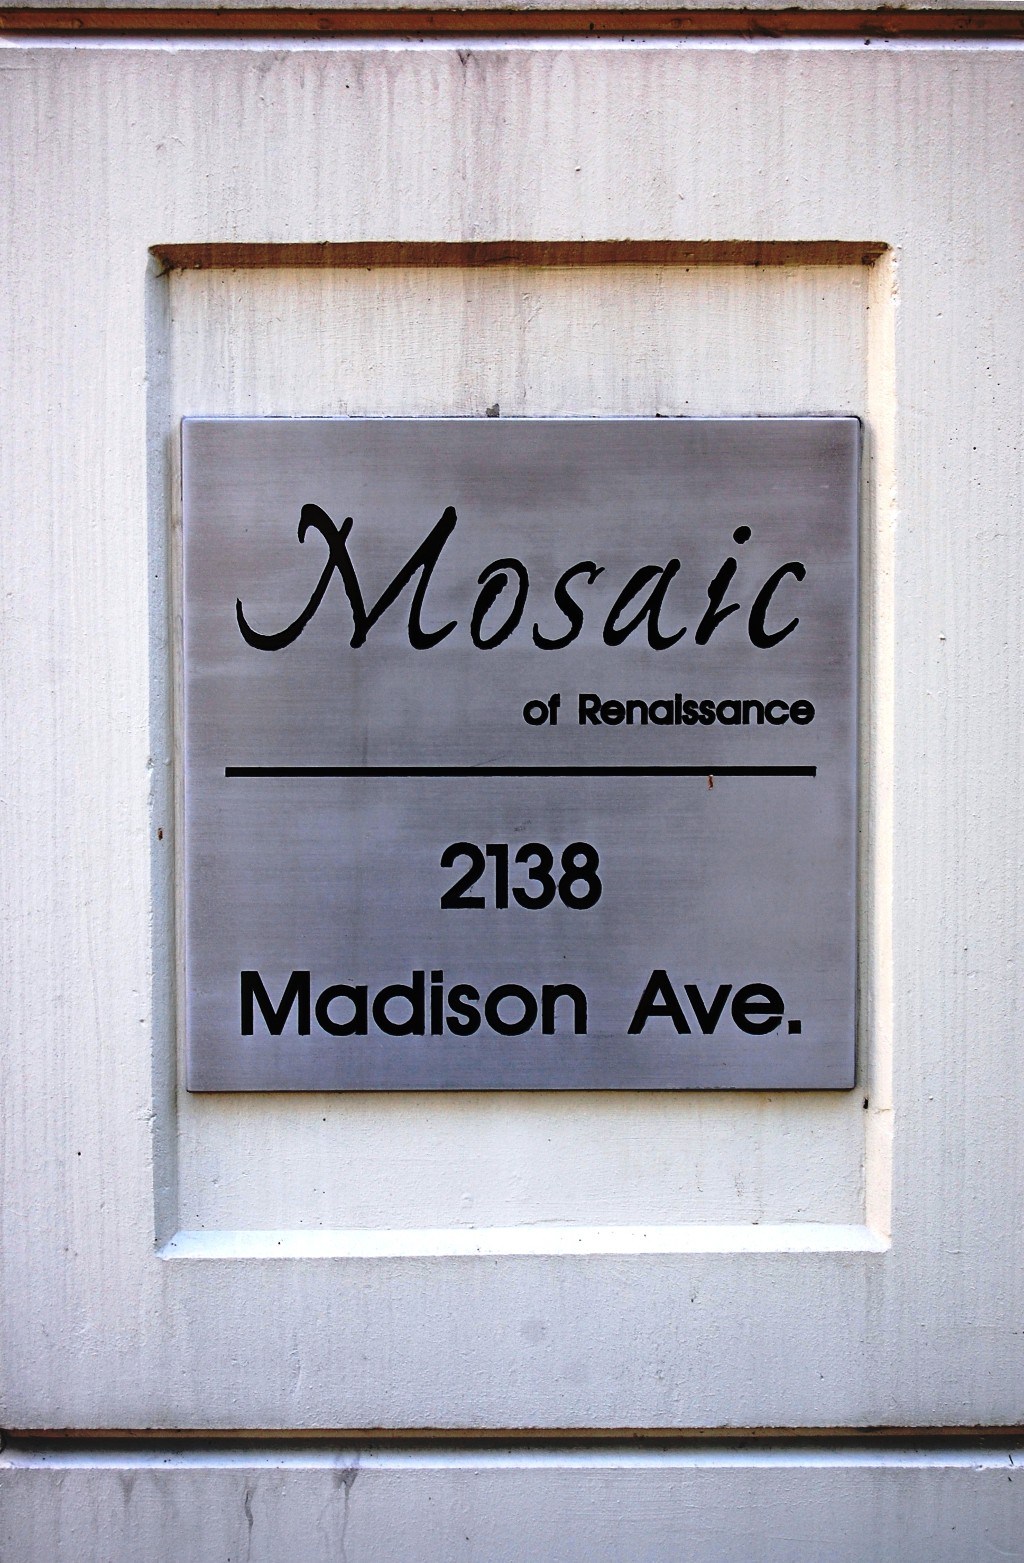 "Photo 28: # 1702 - 2138 Madison Avenue in Burnaby: Brentwood Park Condo for sale in ""MOSAIC"" (Burnaby North)  : MLS® # V1032156"